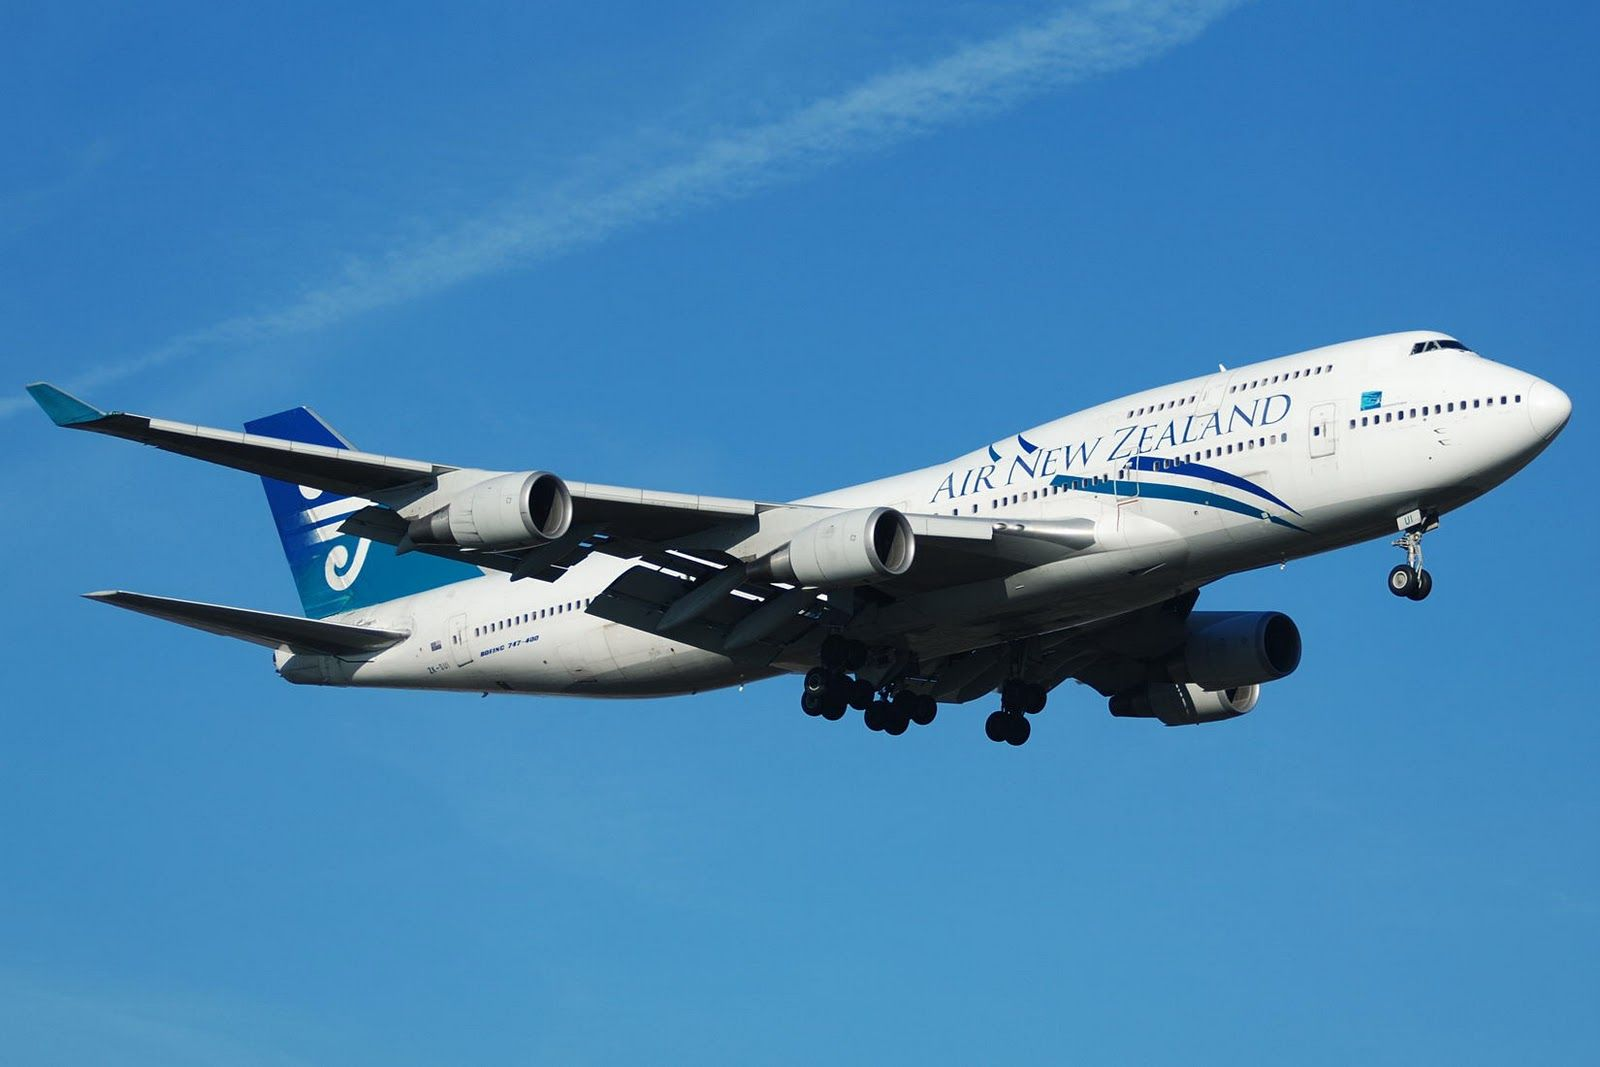 Boeing 747 Airplane Boeing 747 Wallpaper 8172 Hd Wallpapers Air New Zealand Boeing 747 New Zealand